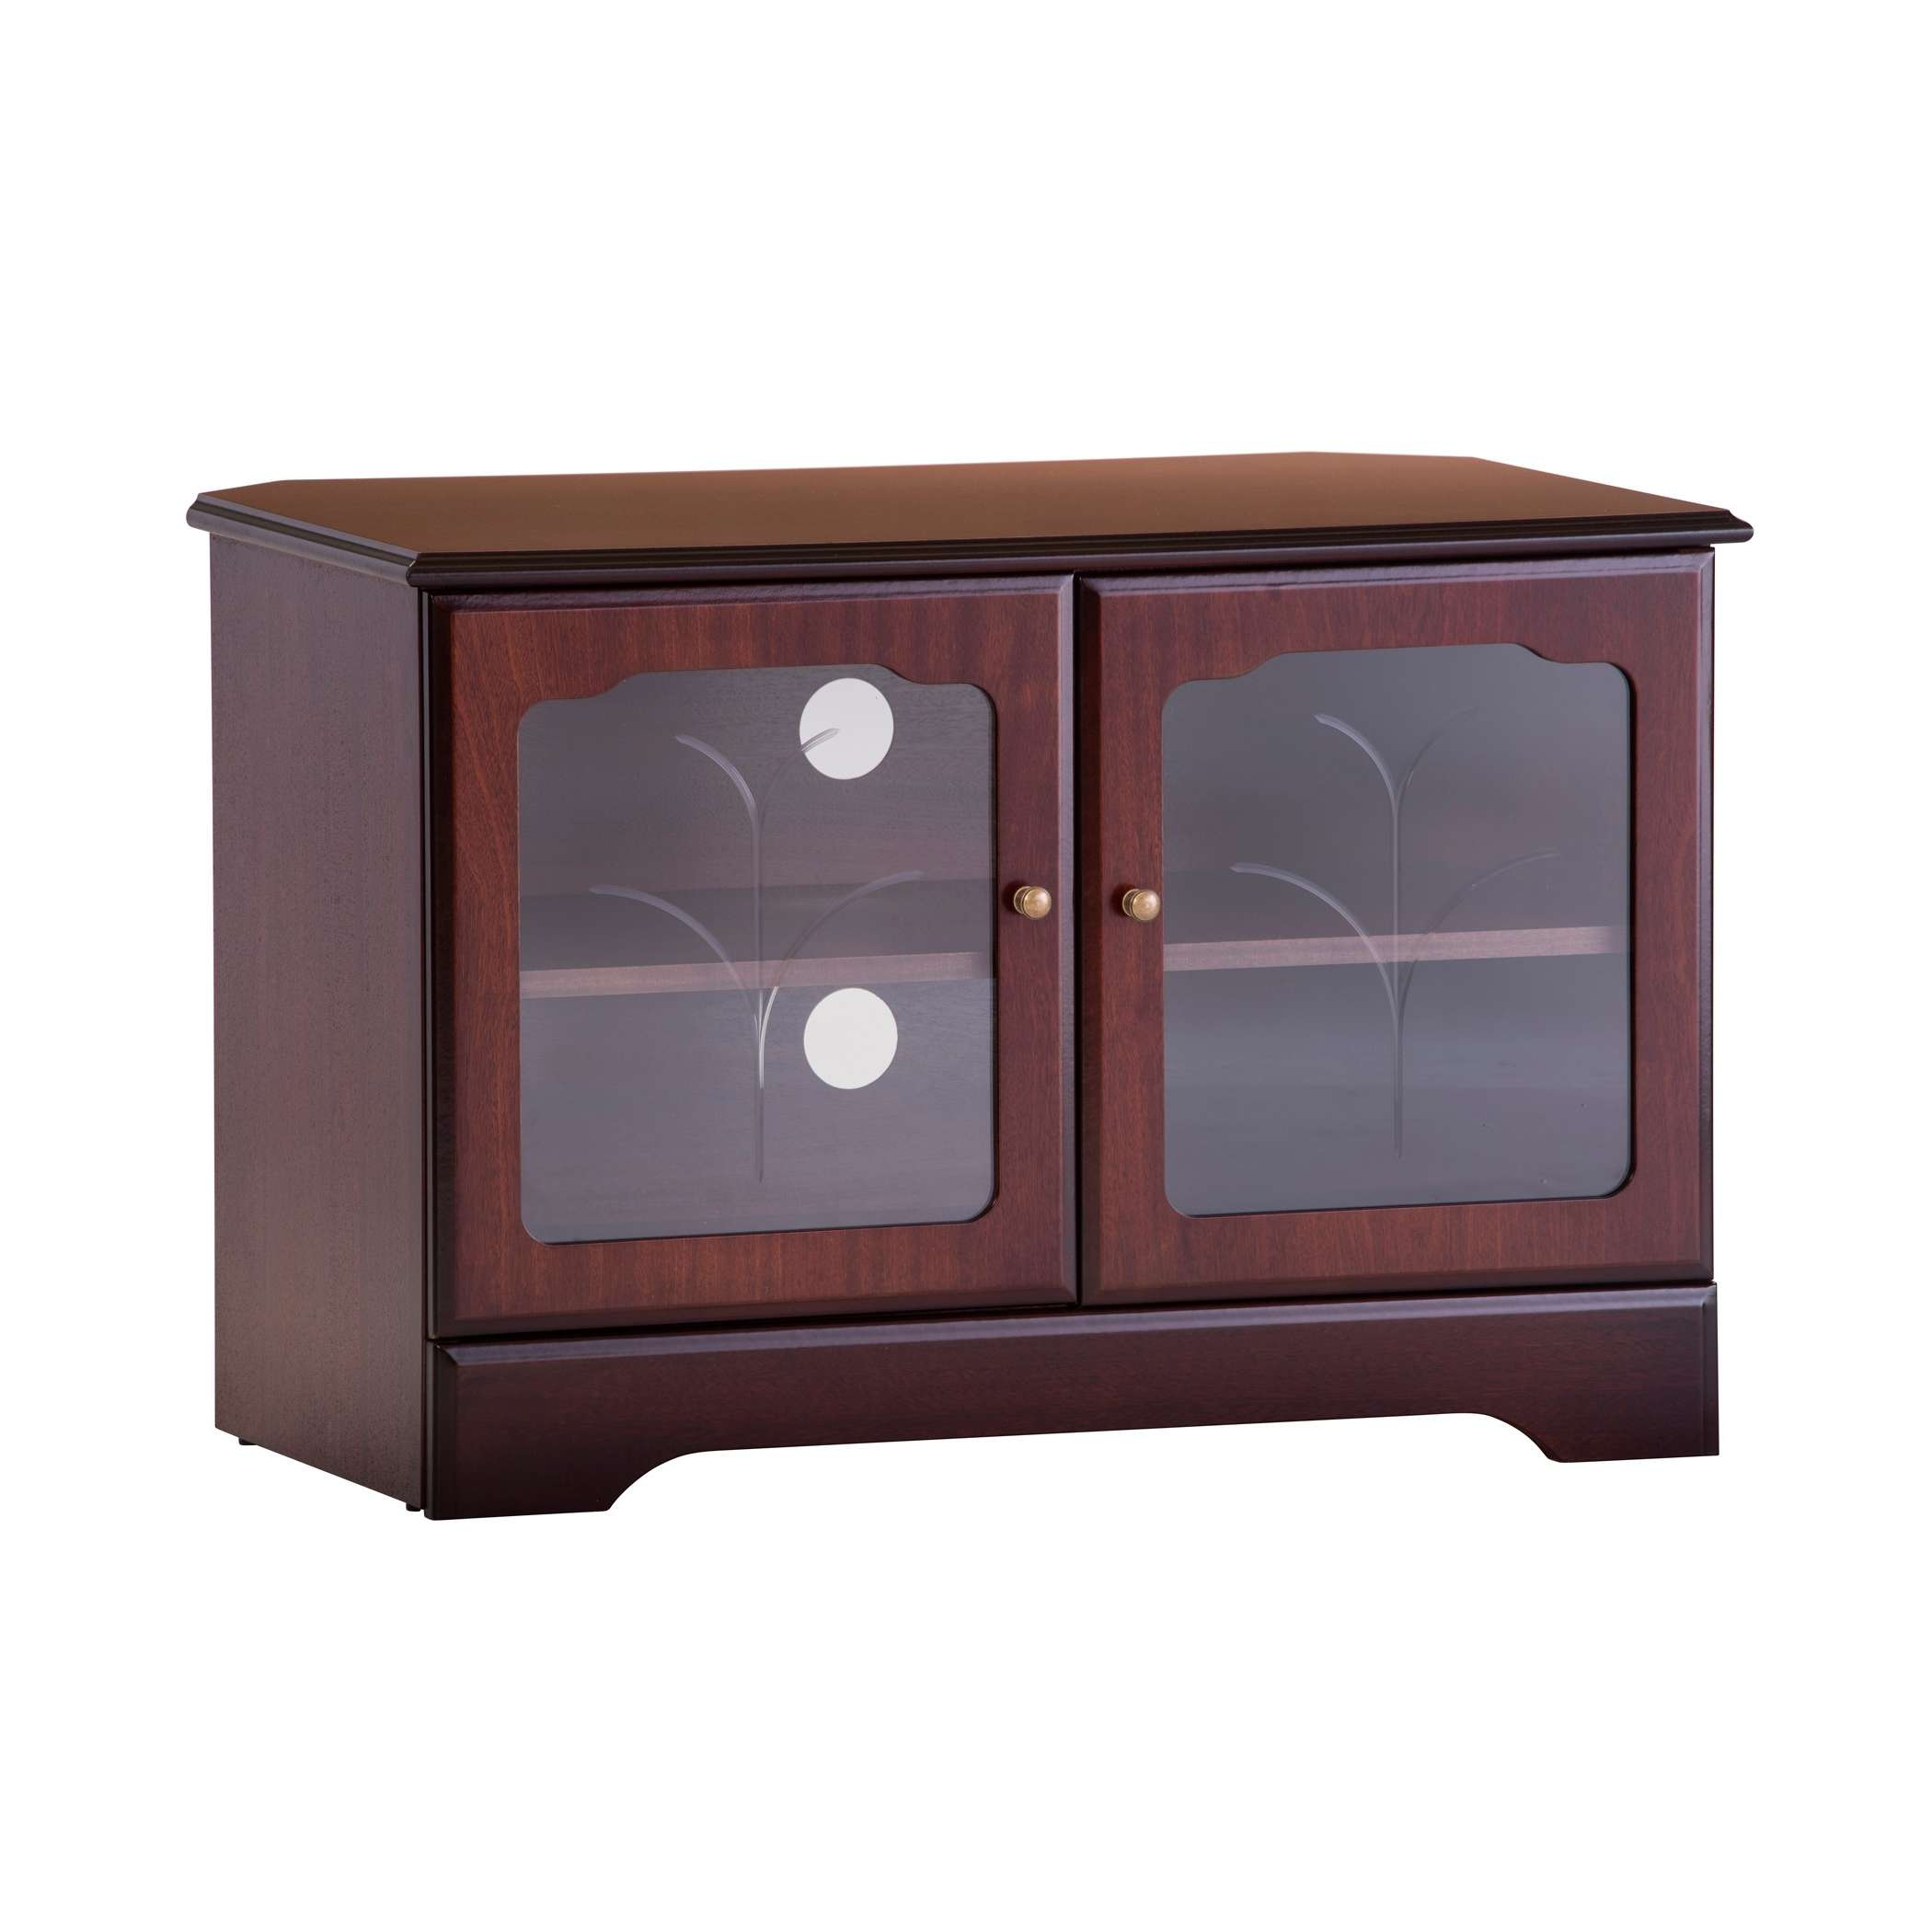 Corner Tv Stand In Mahogany Or Teak | Gola Furniture Uk Regarding Mahogany Corner Tv Cabinets (View 8 of 20)